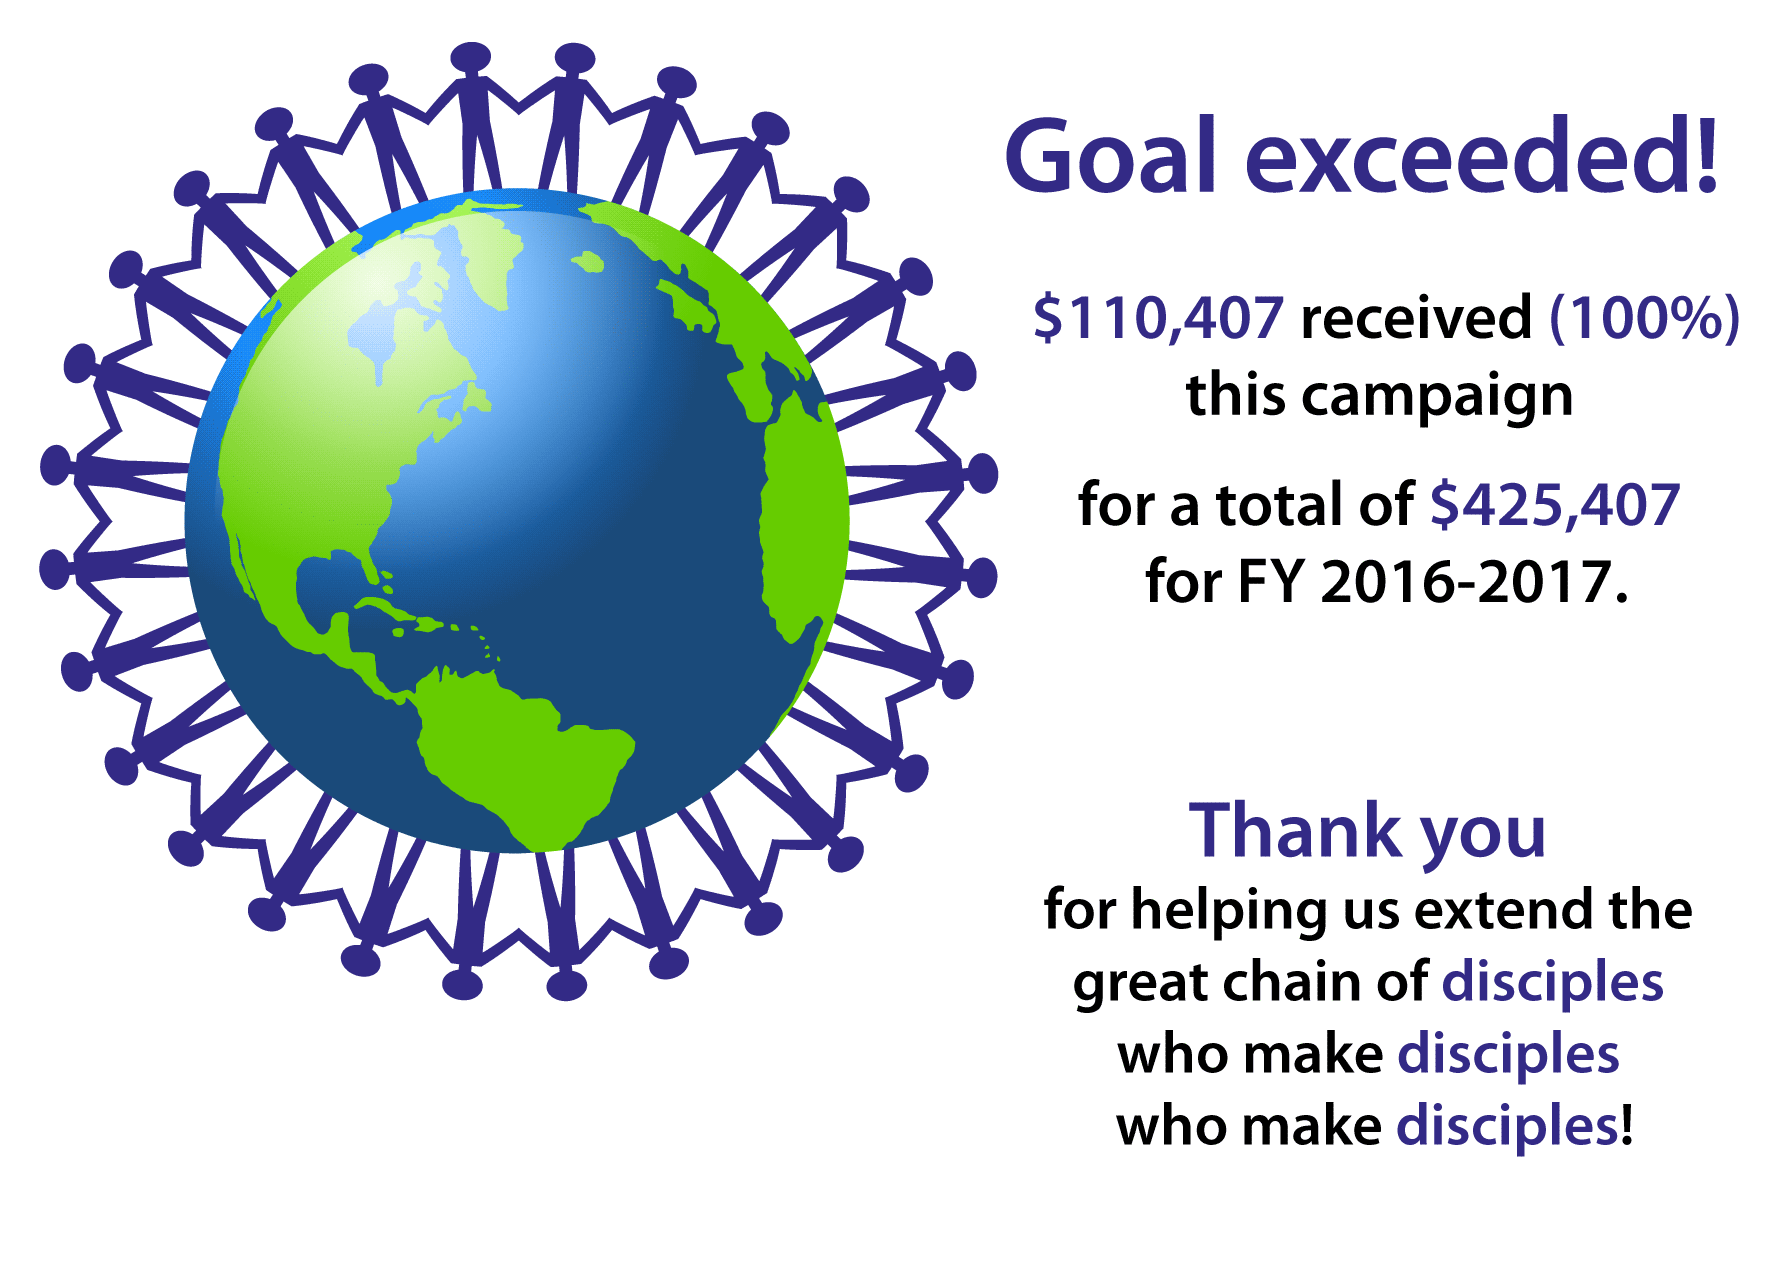 Goal exceeded! Thank you!